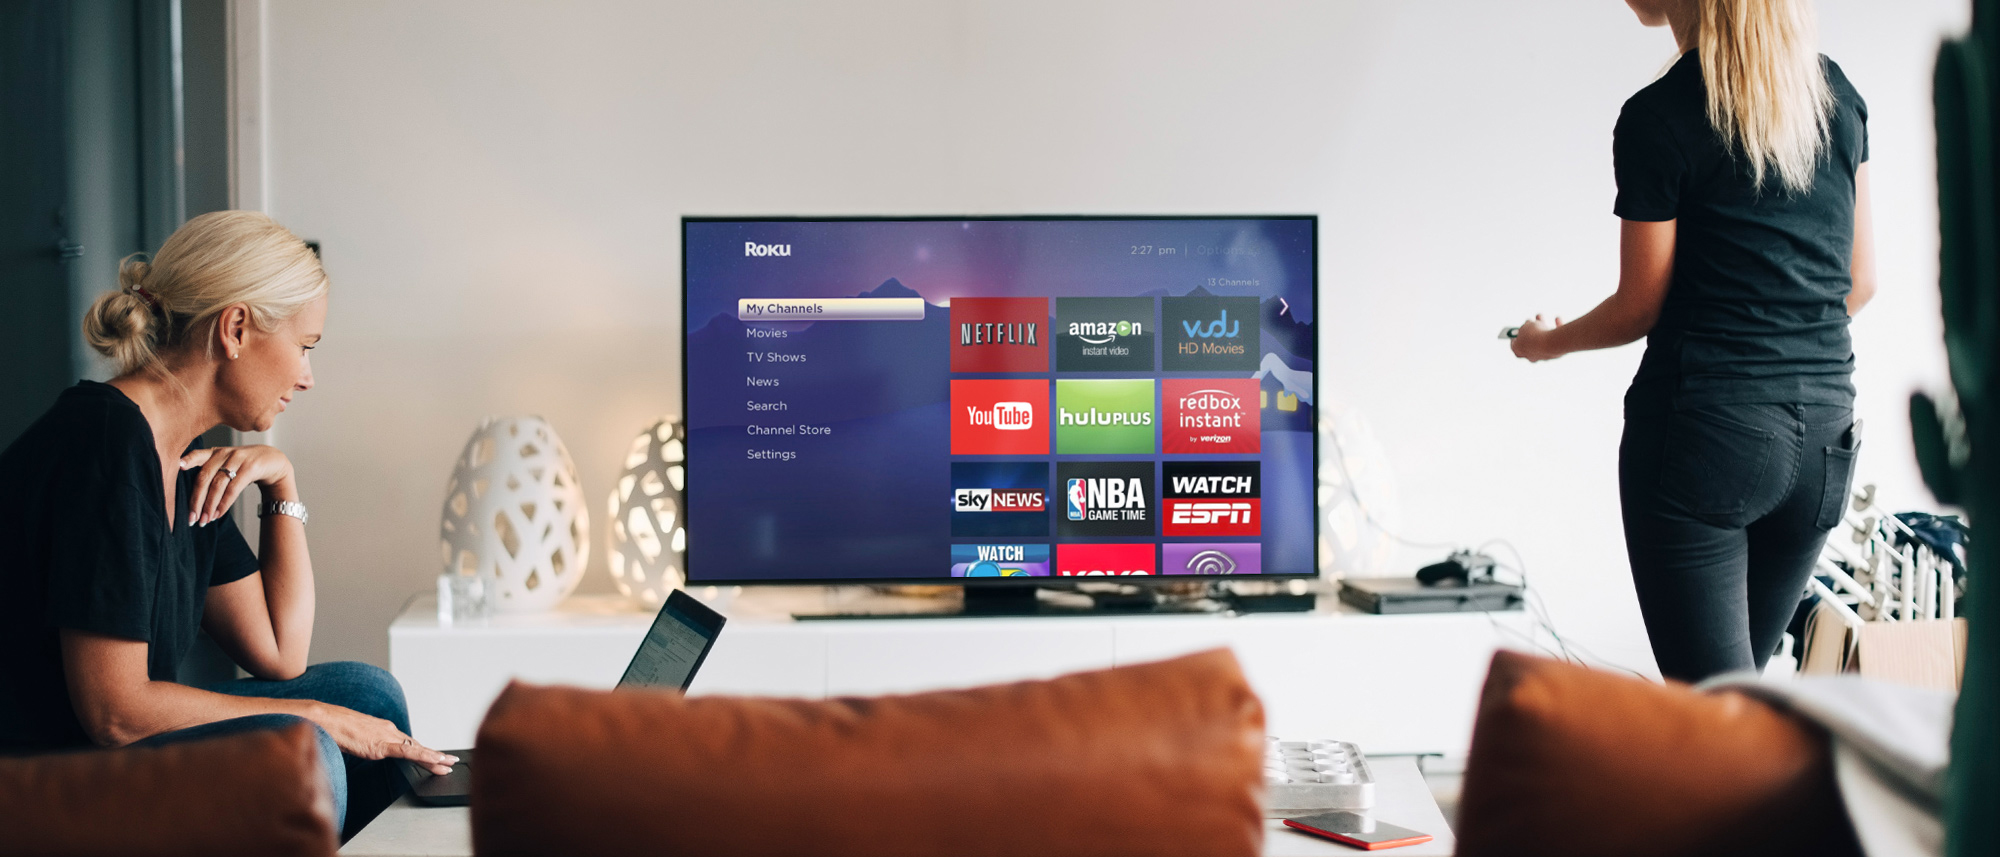 Best Smart TVs 2019 - The Best 4K and HD Televisions for the Money